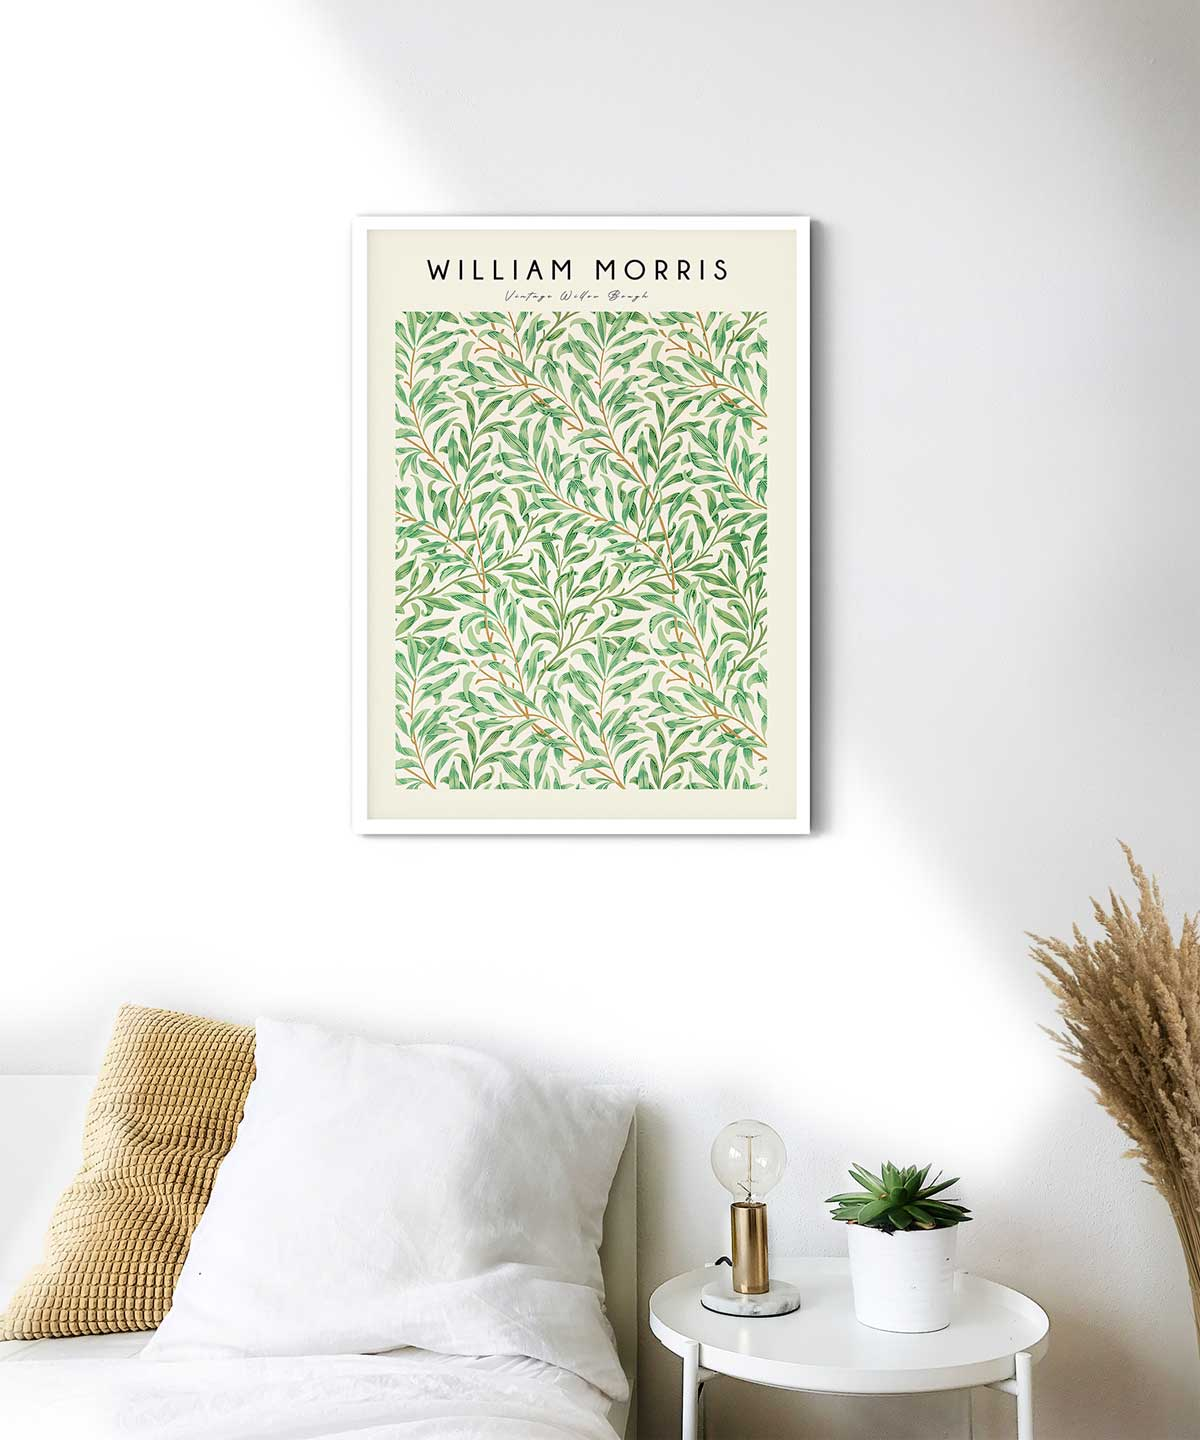 William-Morris-Vintage-Willow-Bough-Poster-White-Framed-on-Wall-Duwart